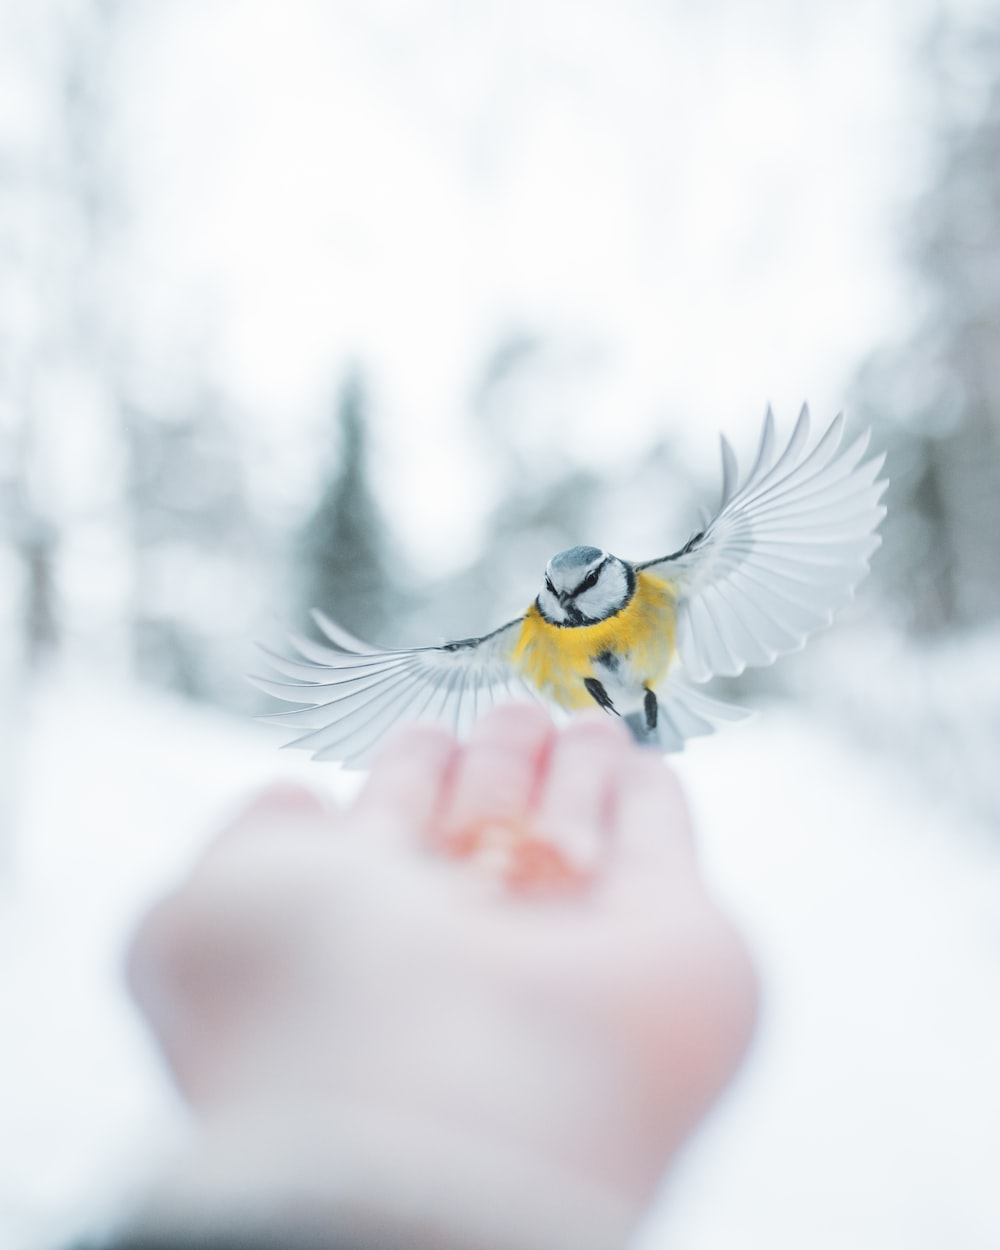 yellow and white bird on persons finger